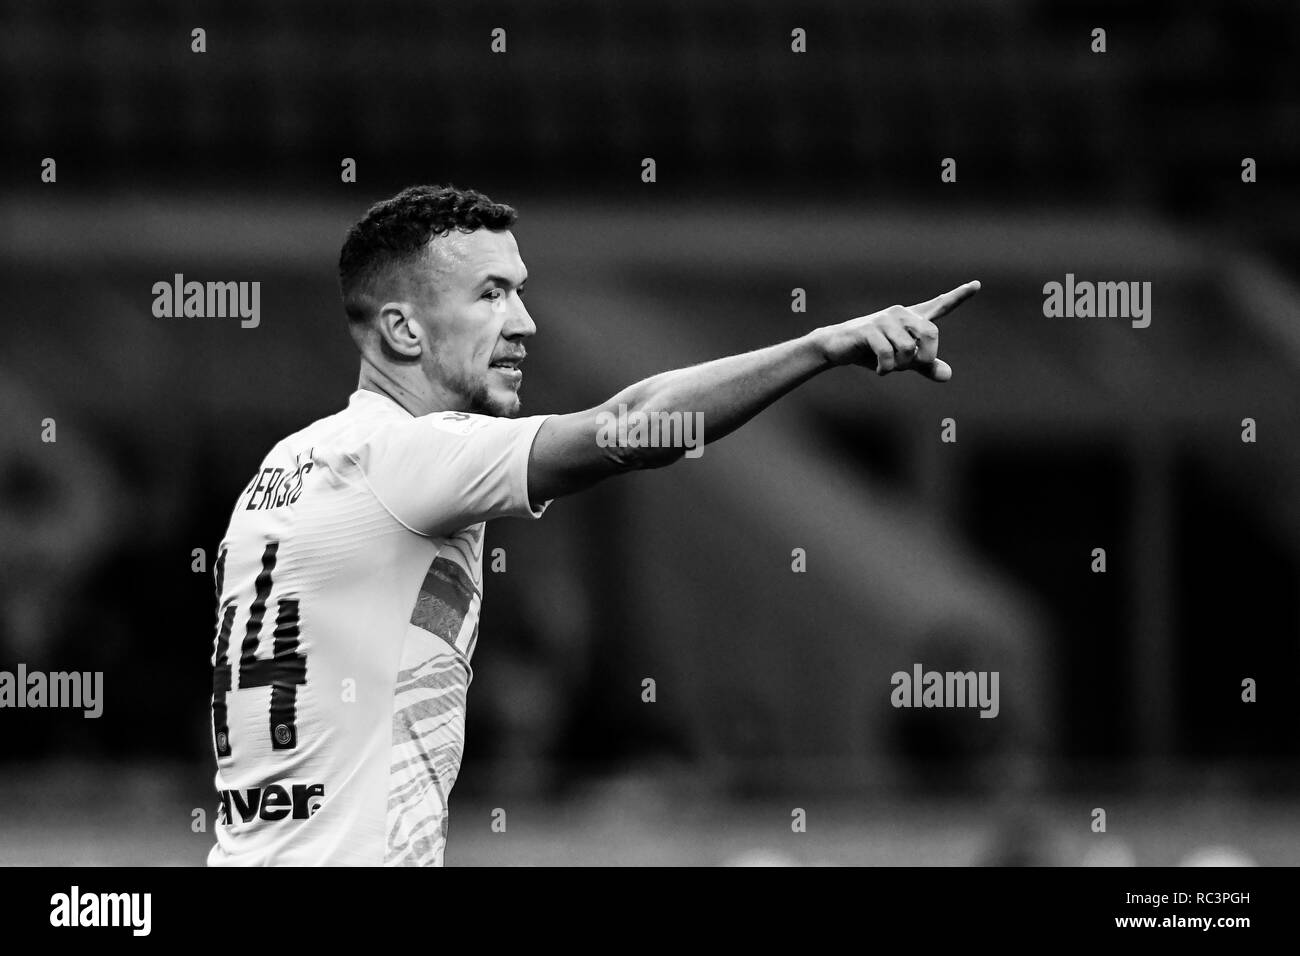 Black and White image of Midfielder Ivan Perisic (Inter) gesturing during the Italian Cup 'Coppa Italia' football match, Inter Milan vs Benevento Calcio at San Siro Meazza Stadium in Milan, Italy on 13 January 2019. The football match is played behind closed doors after Napoli's Senegalese player Kalidou Koulibaly was subject to racist chants by FC Internazionale's 'ultra' fans during the Boxing Day match. Credit: Piero Cruciatti/Alamy Live News - Stock Image